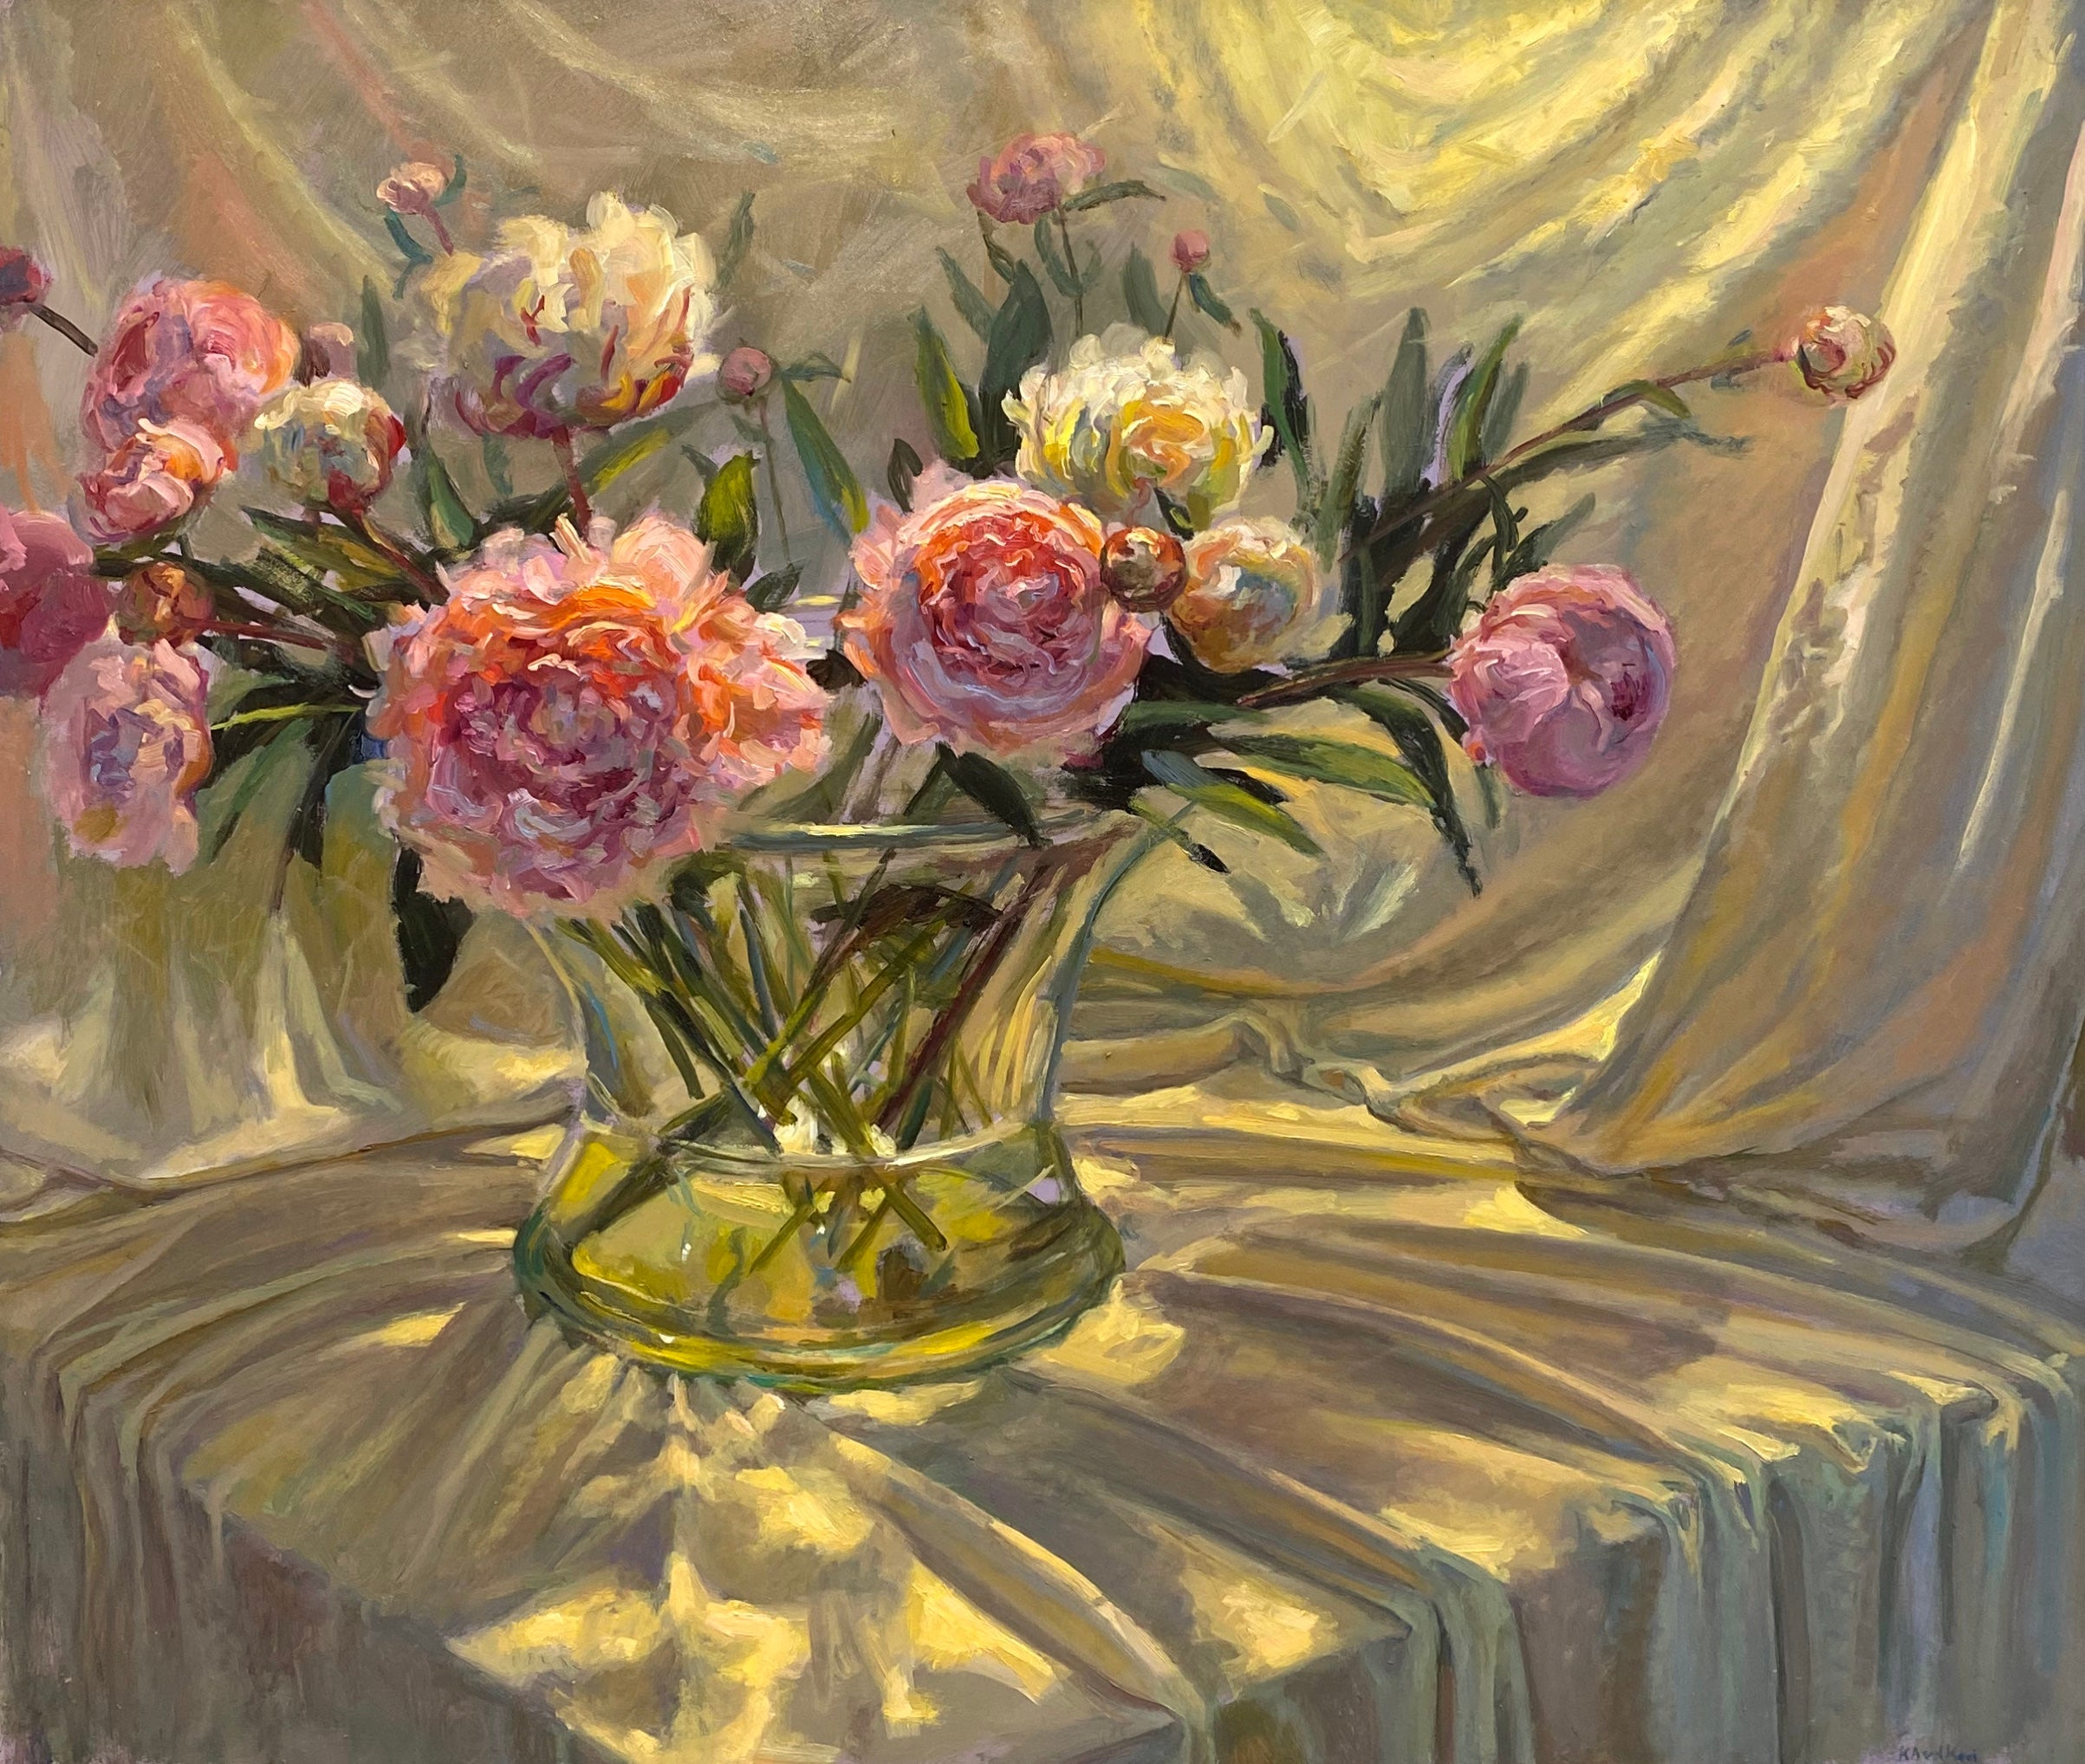 Peonies - 21st Century Colorful Impressionistic oil painting with flowers